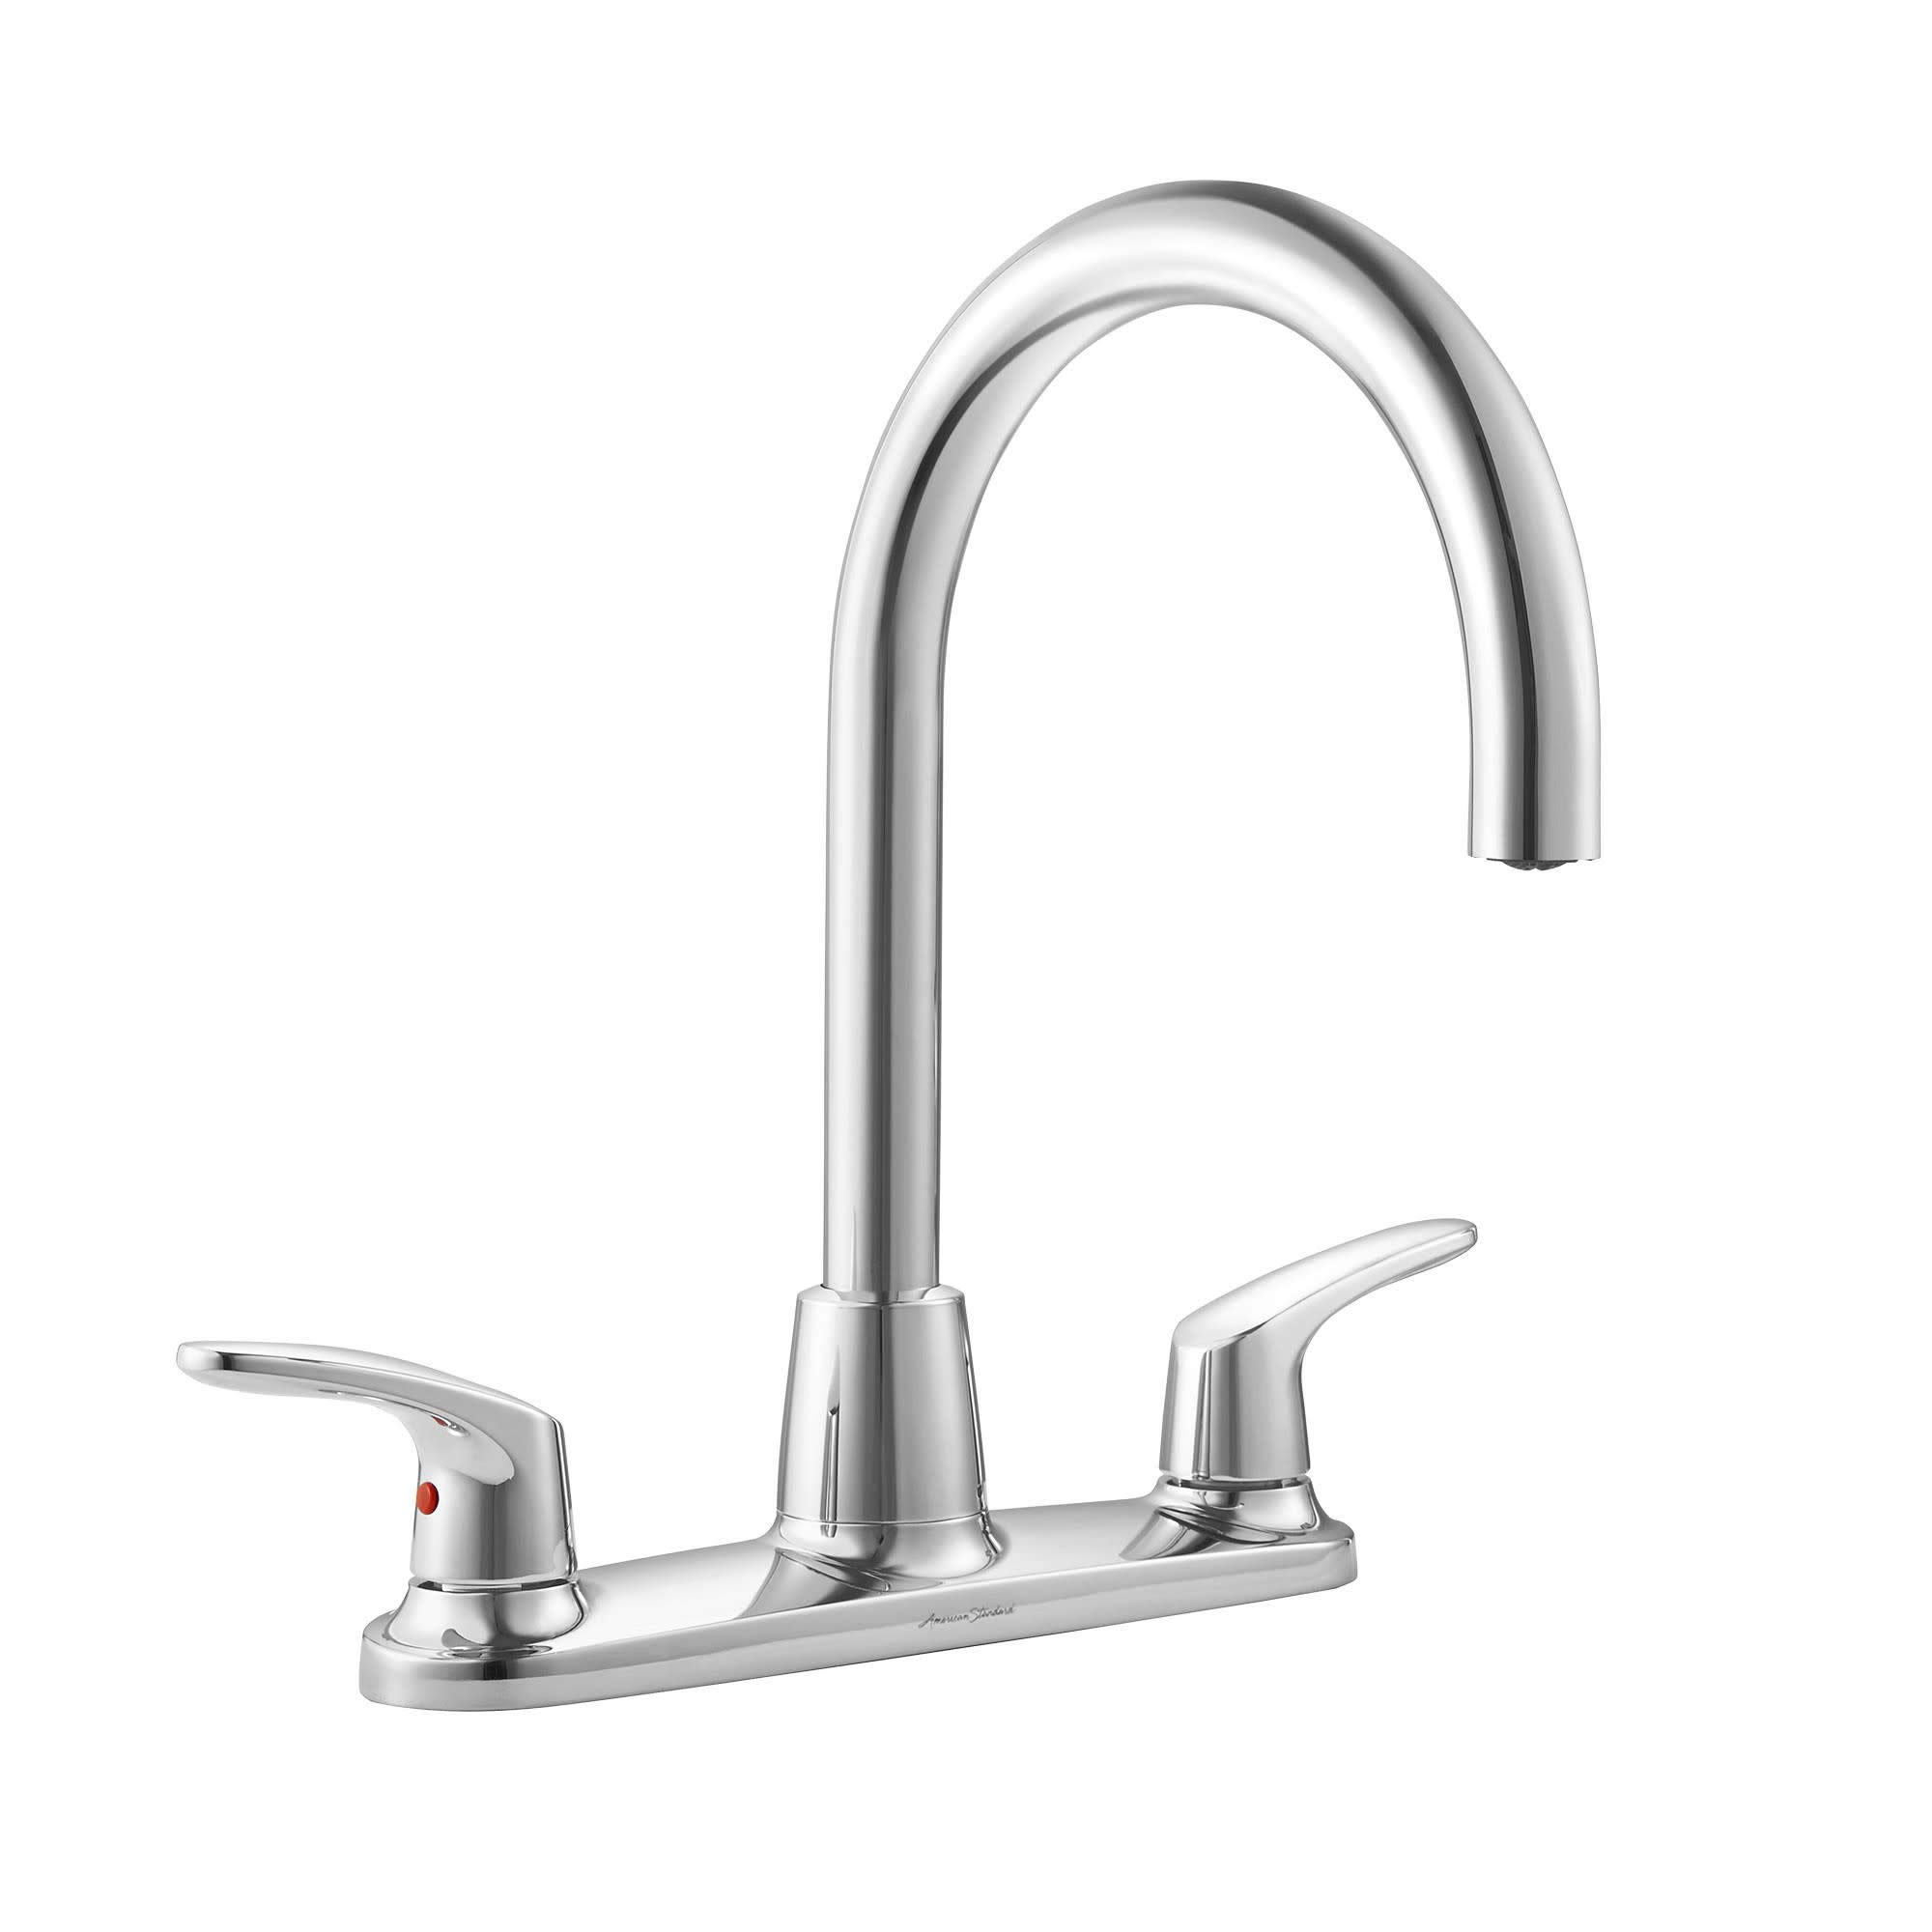 American Standard 7074550.002 Colony Pro Two-Handle High-Arc Kitchen Faucet Less Sray in Polished Chrome